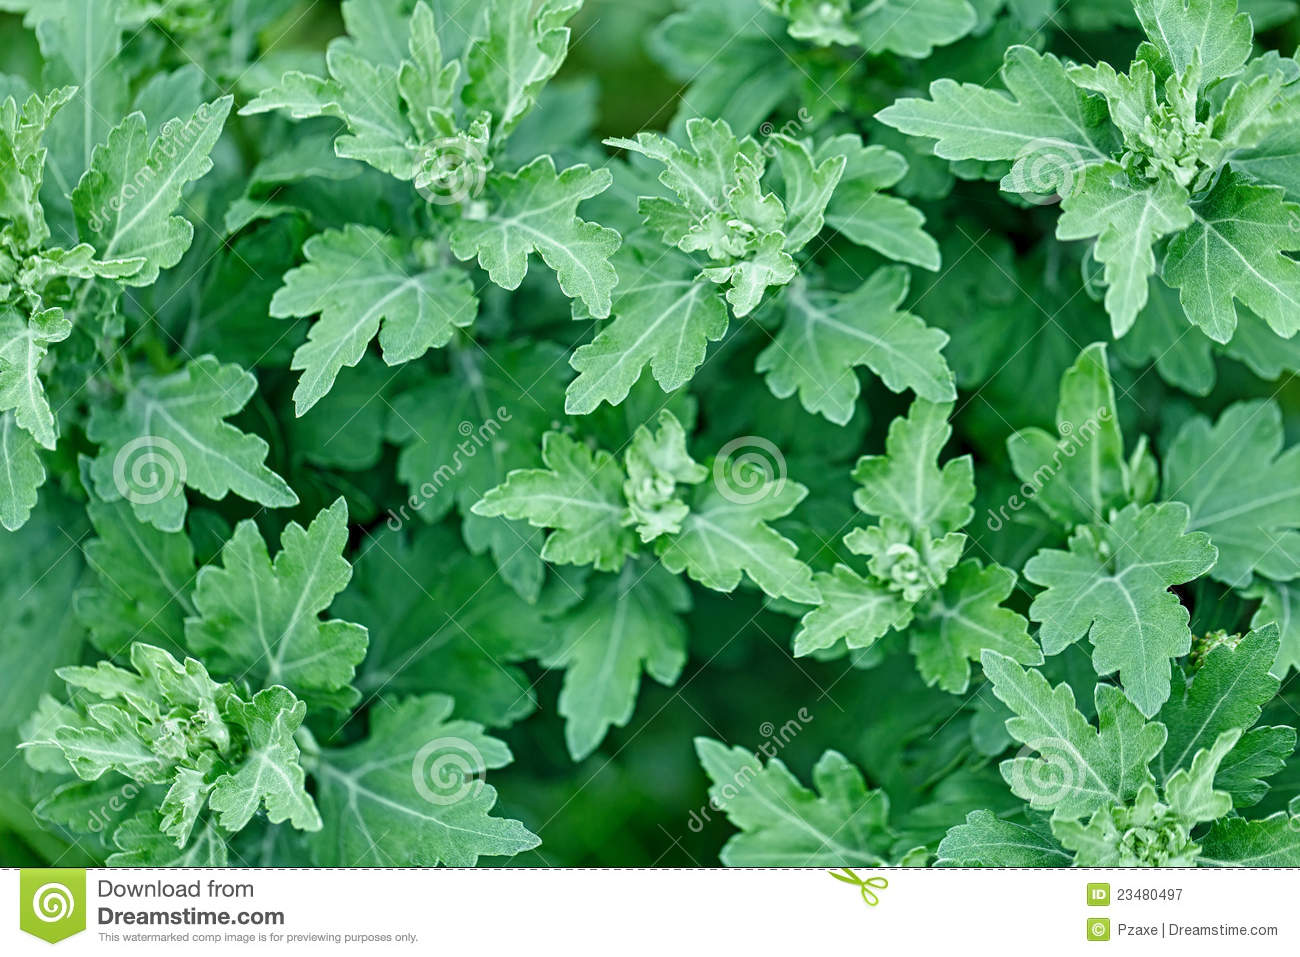 Chrysanthemum Leaves Without Flowers Royalty Free Stock